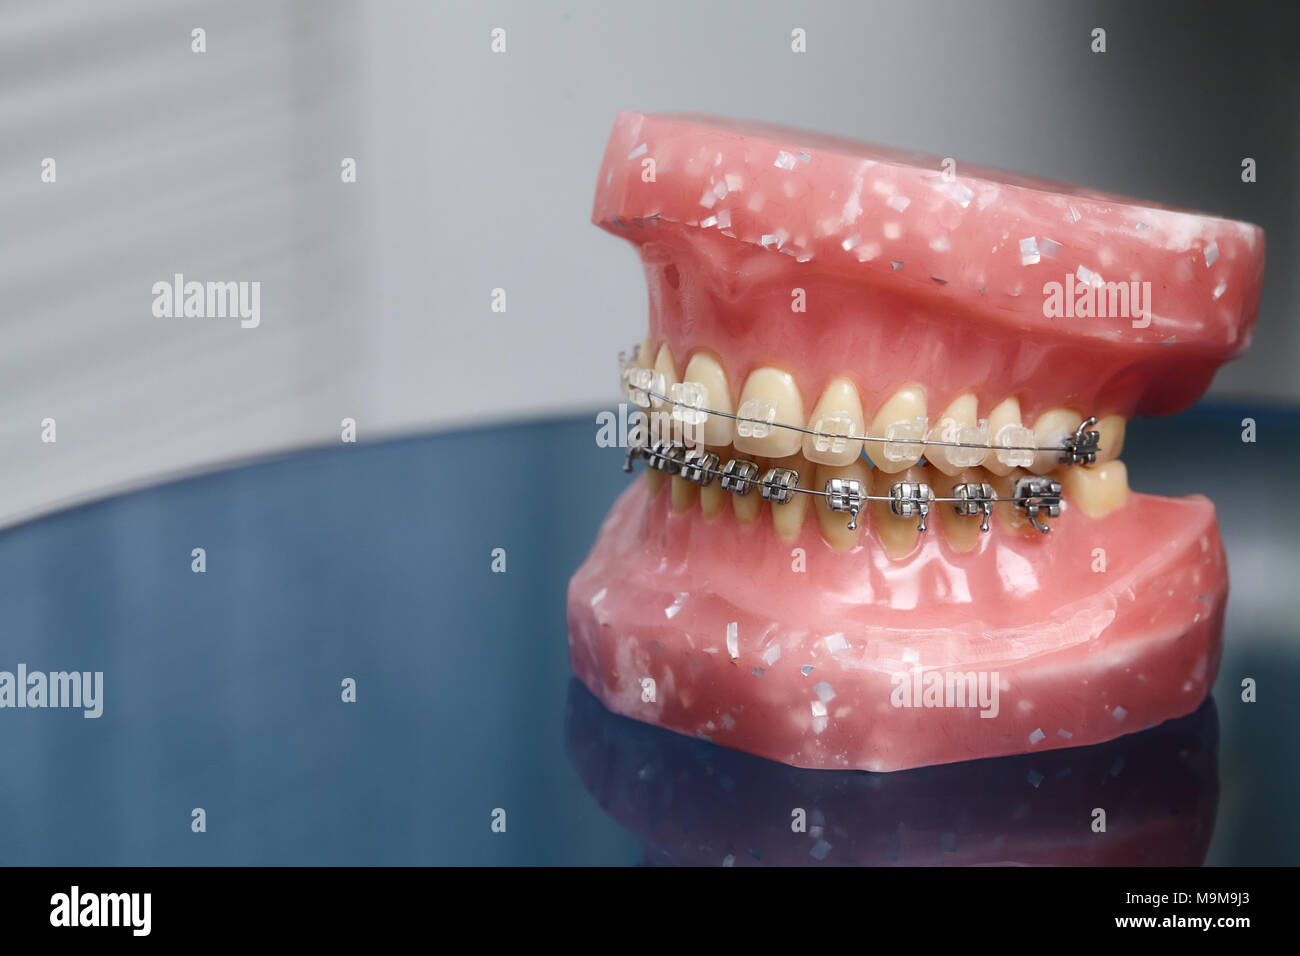 Human jaw or teeth model with metal wired dental braces, orthodontic ...